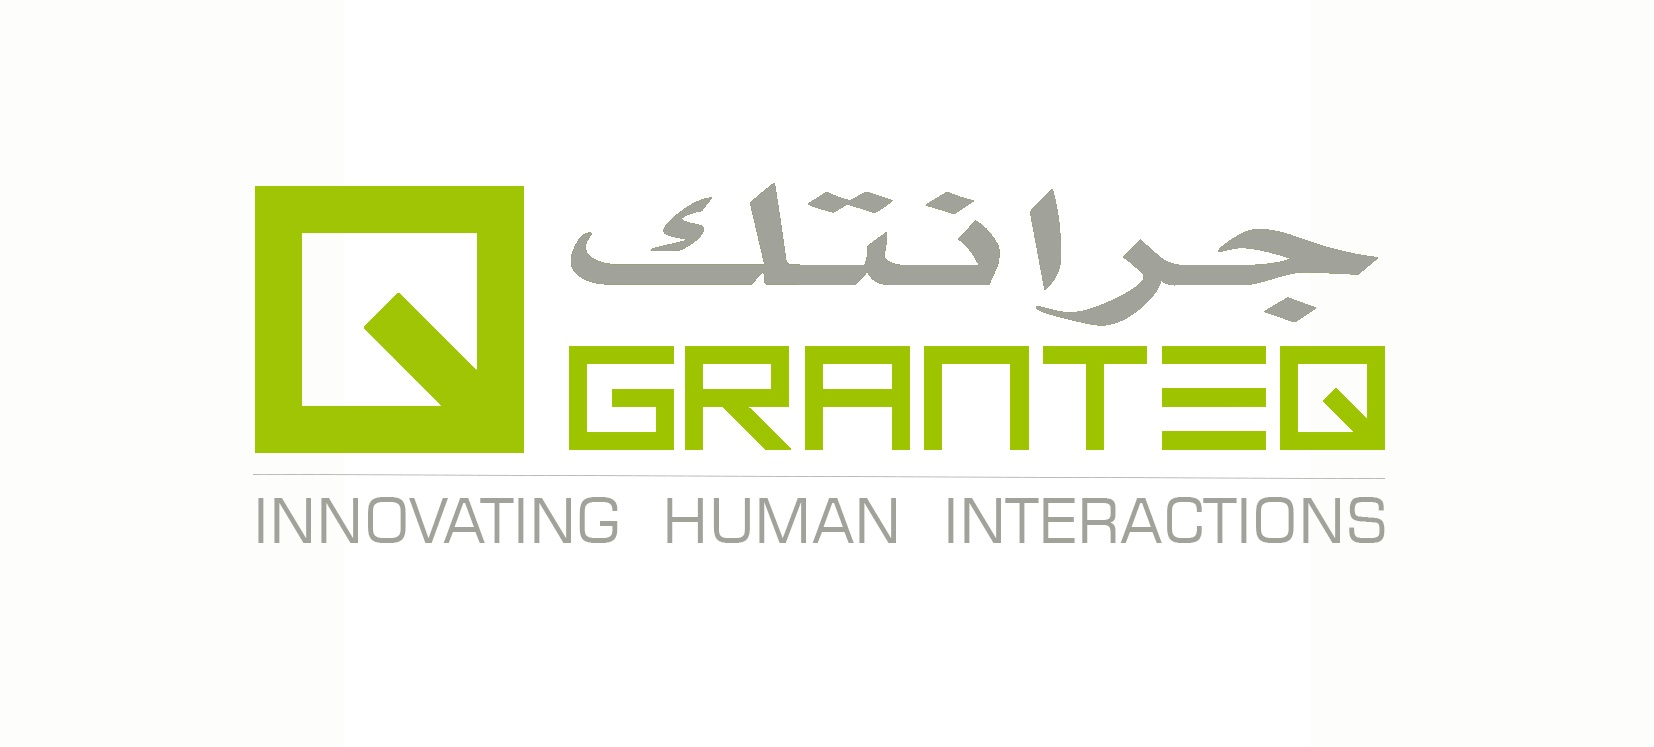 EKTA and GRANTEQ launch strategic partnership